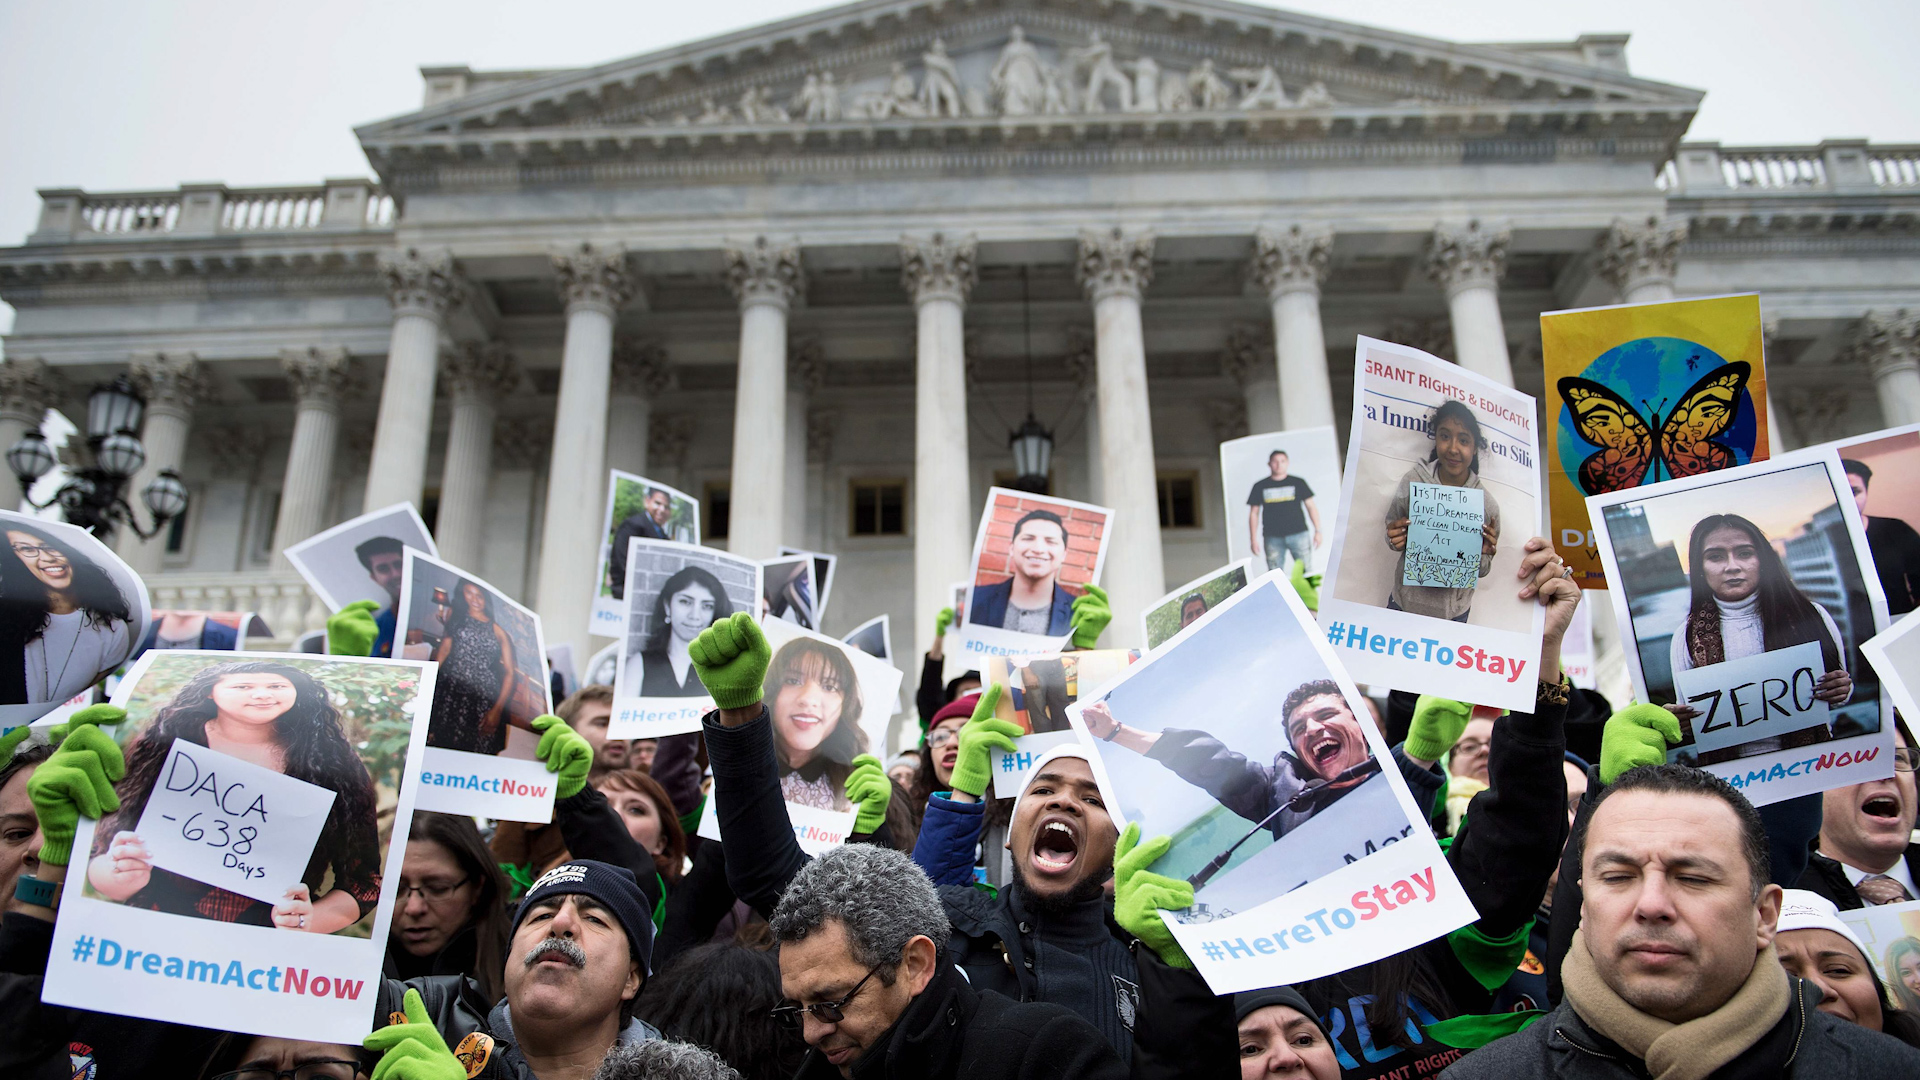 Supreme Court declines to enter controversy over 'dreamers,' rejects Trump administration's request to review lower court rulings